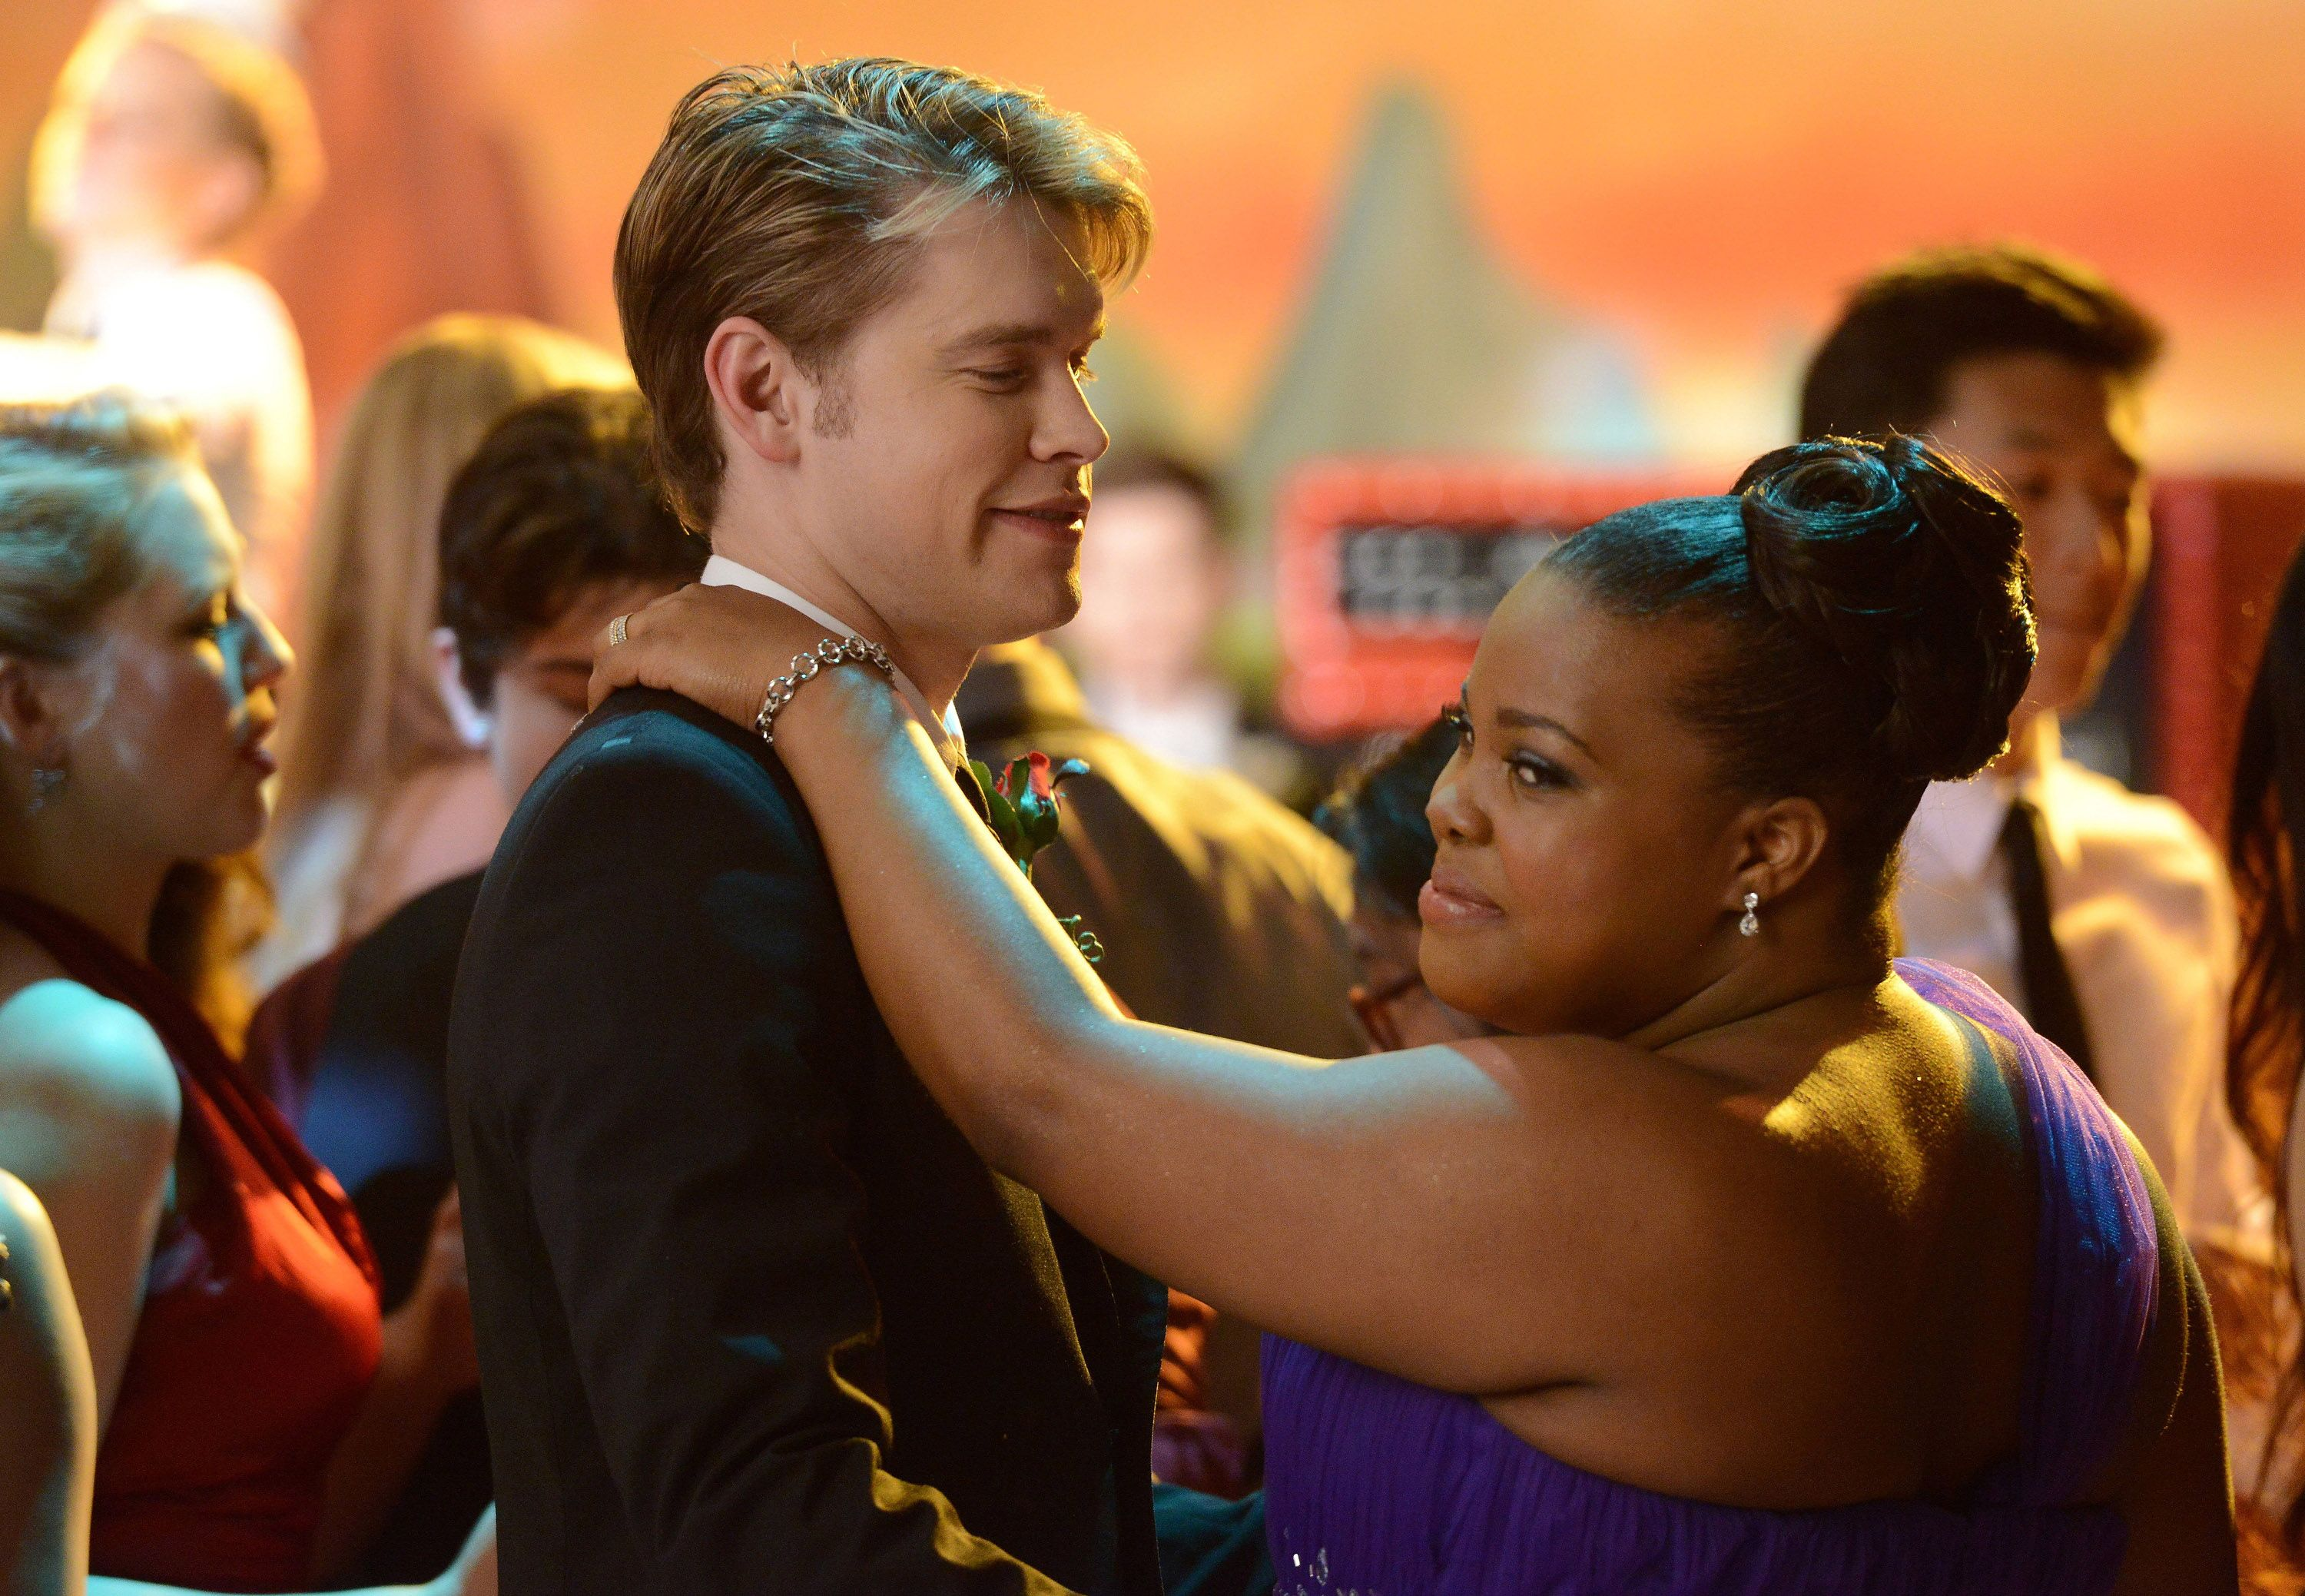 Prom Date Quiz - Who Is Your Perfect Prom Date for Prom 2018?